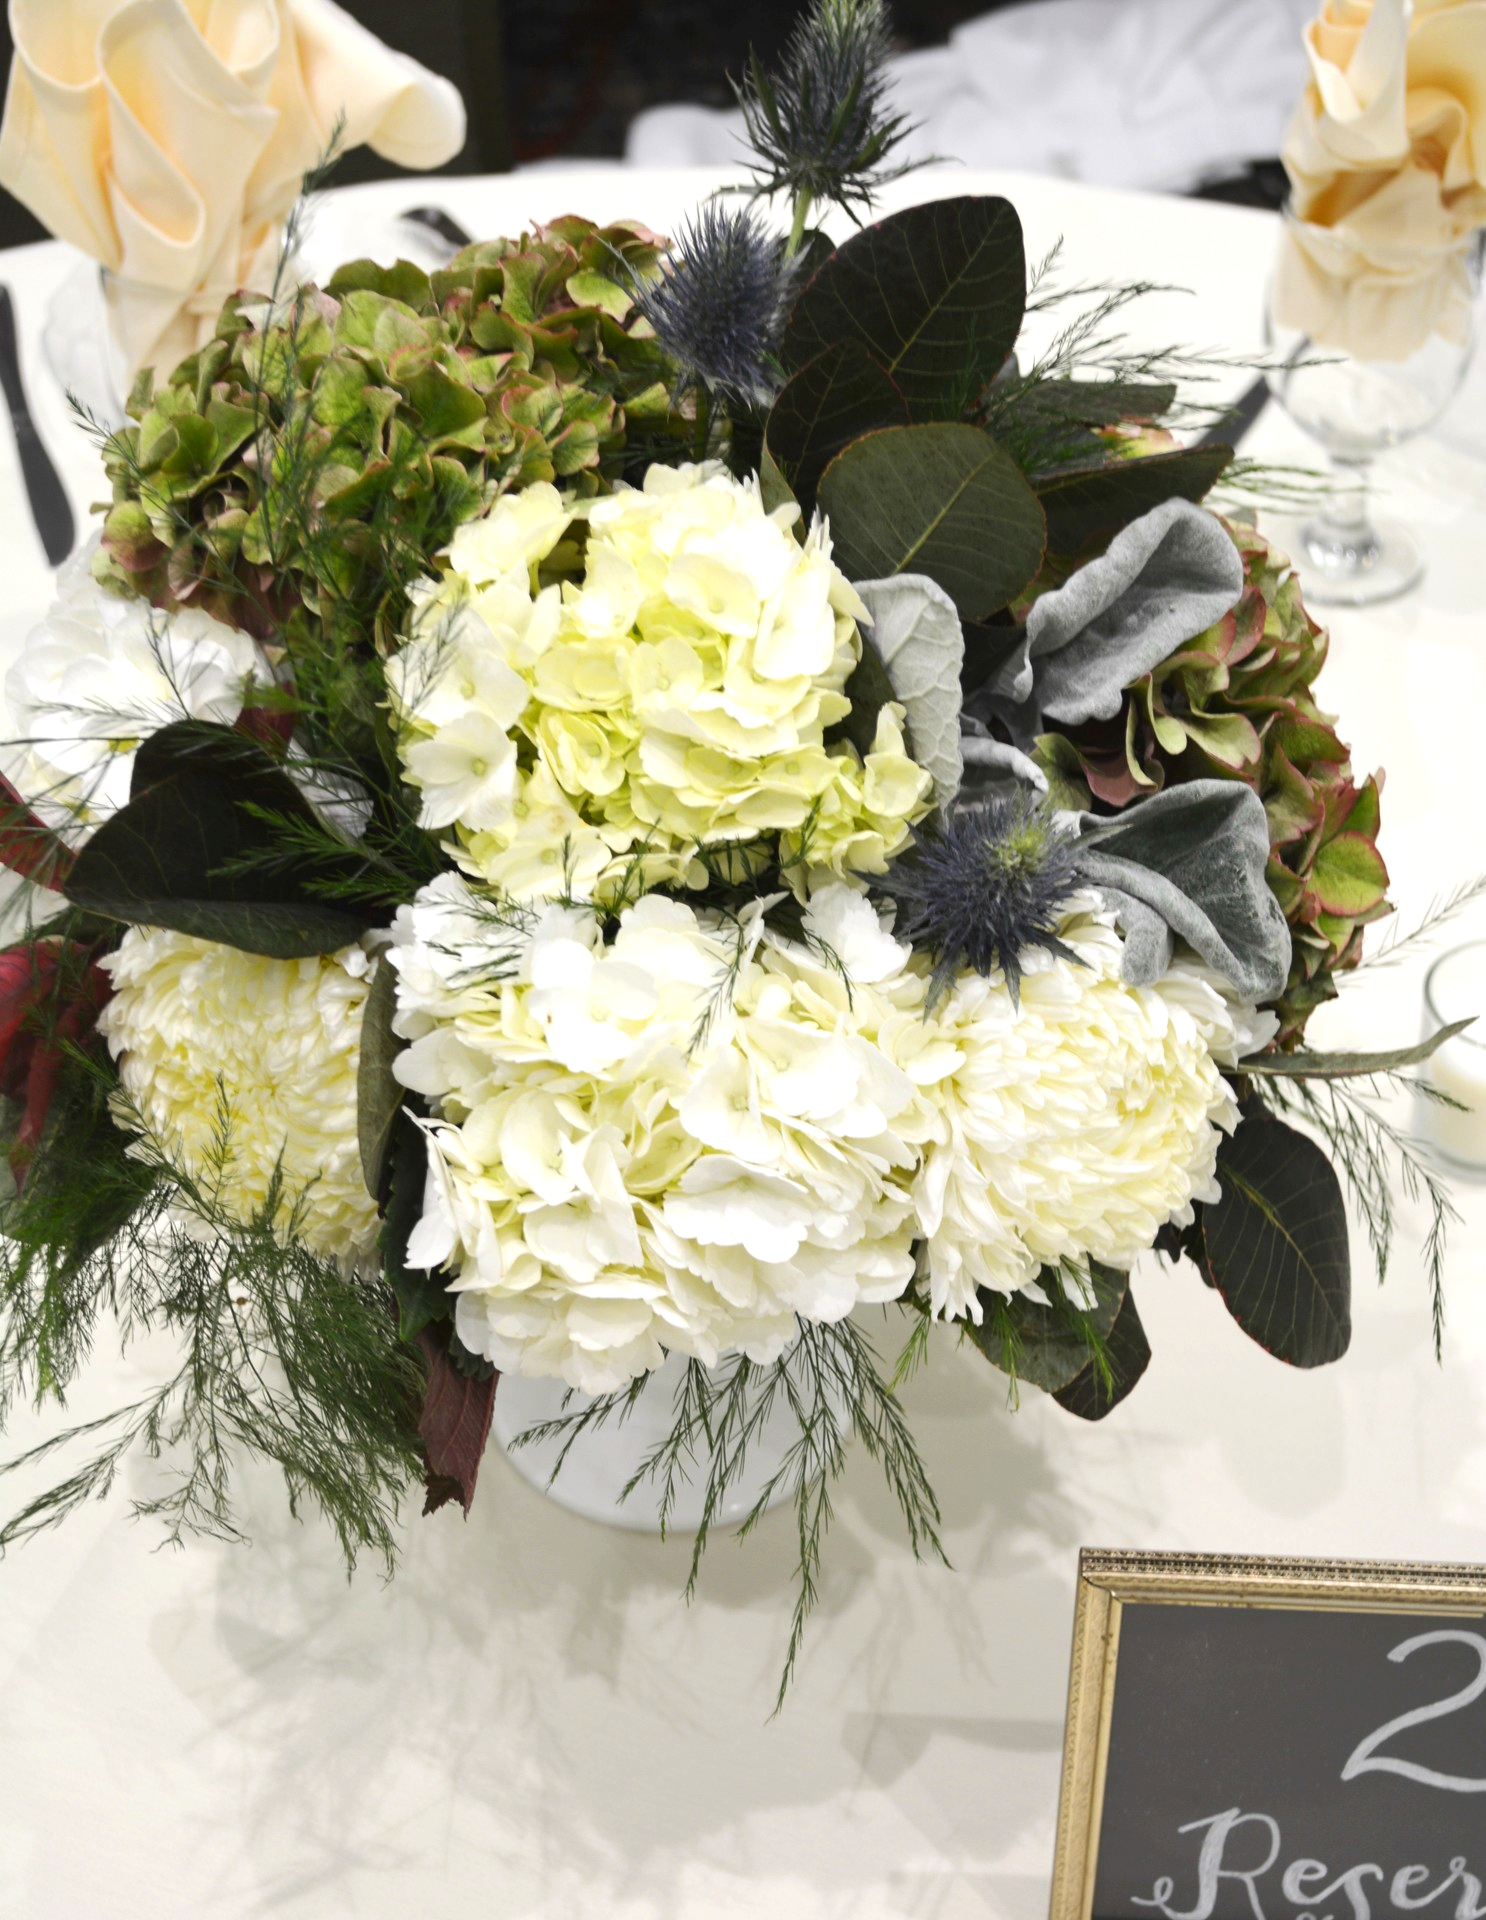 Vintage milk glass compotes mounded with tree fern, purple smoke leaf, hydrangeas, football mums and thistle